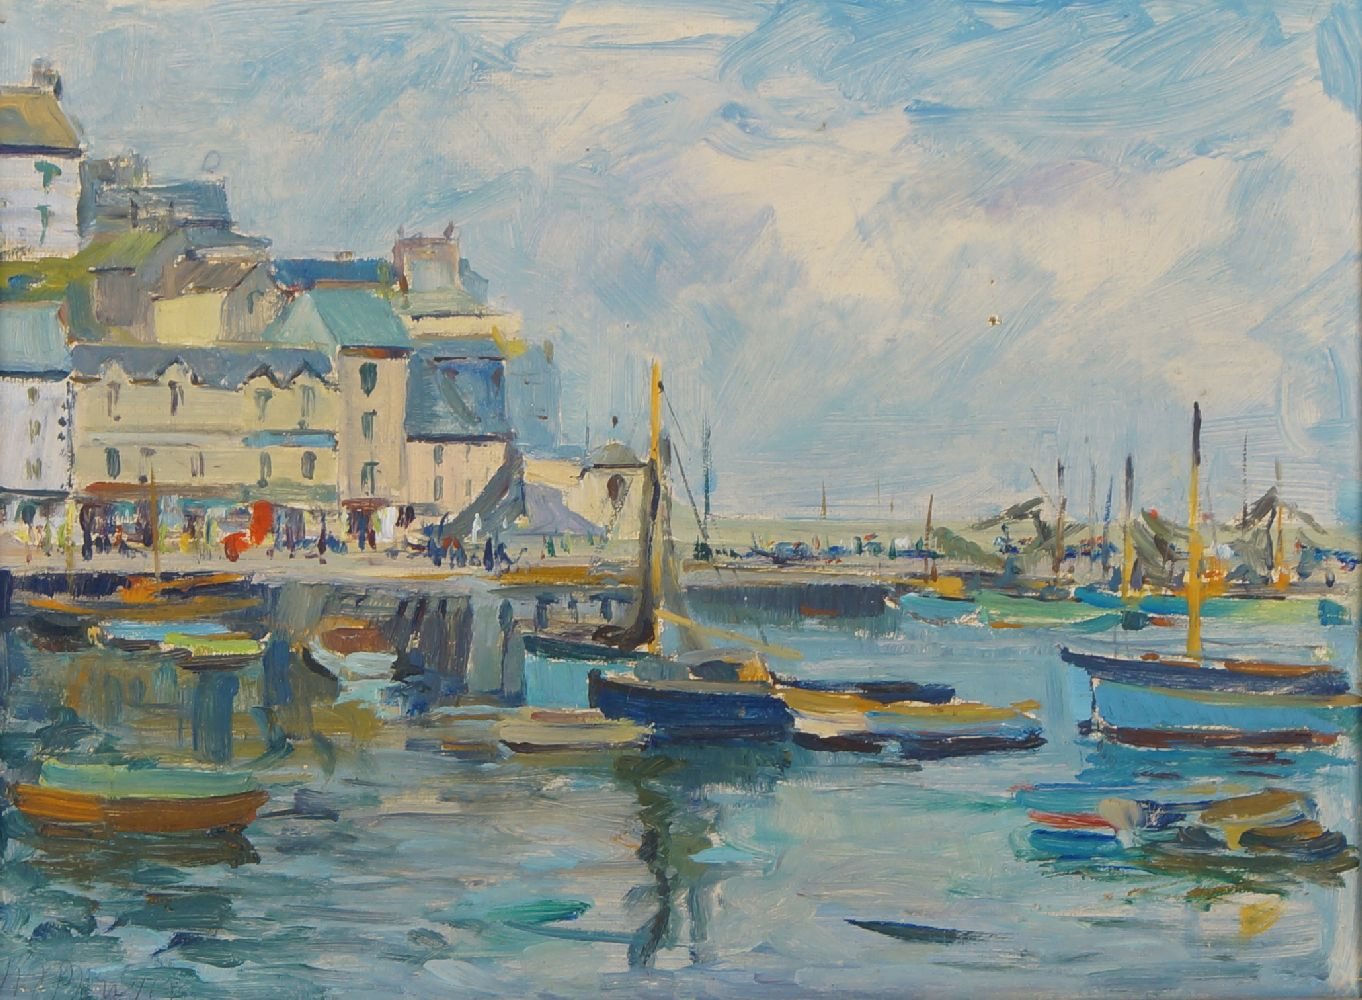 Harold J Bowyer, British, early-mid 20th century- Brixham; oil on board, signed, signed, titled